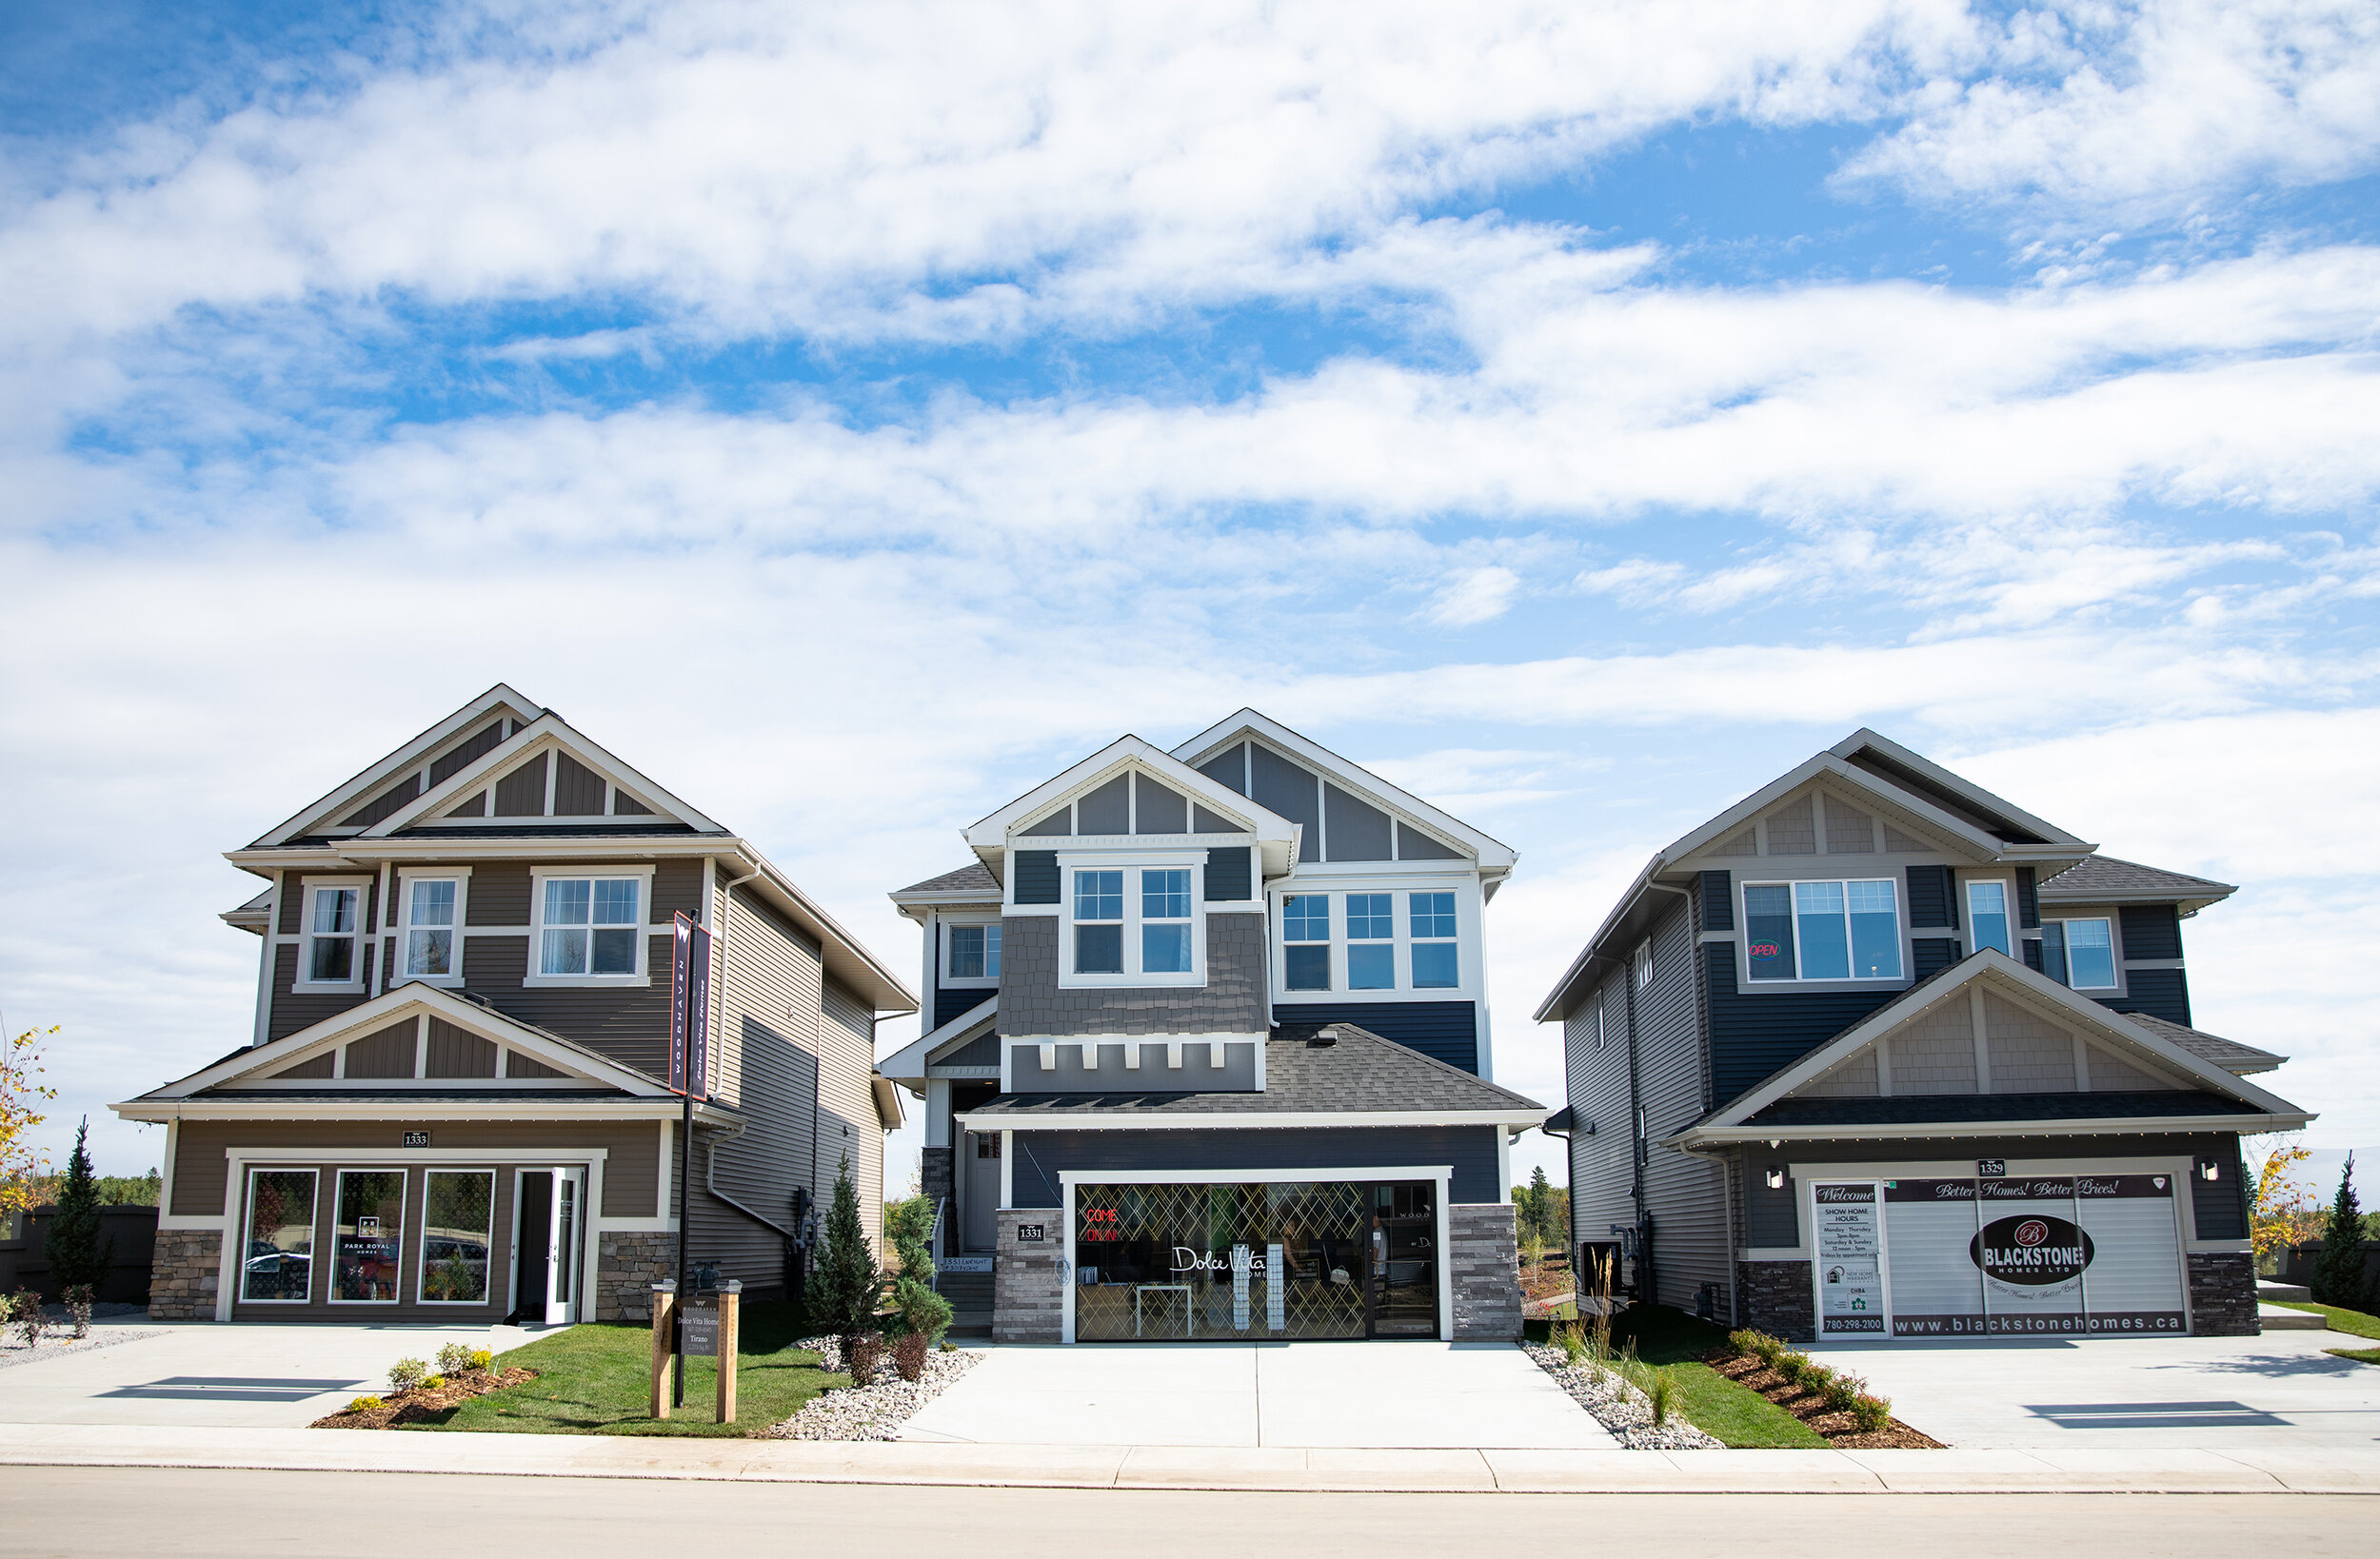 Award Winning Builders - Our builder group consists of four award-winning builders who are bringing three different product types to this beautiful ravine community in Edmonton's west end.Front Attached Garage Single Family HomesRear Lane Single Family HomesFront Attached Garage Duplex HomesLearn more ➝